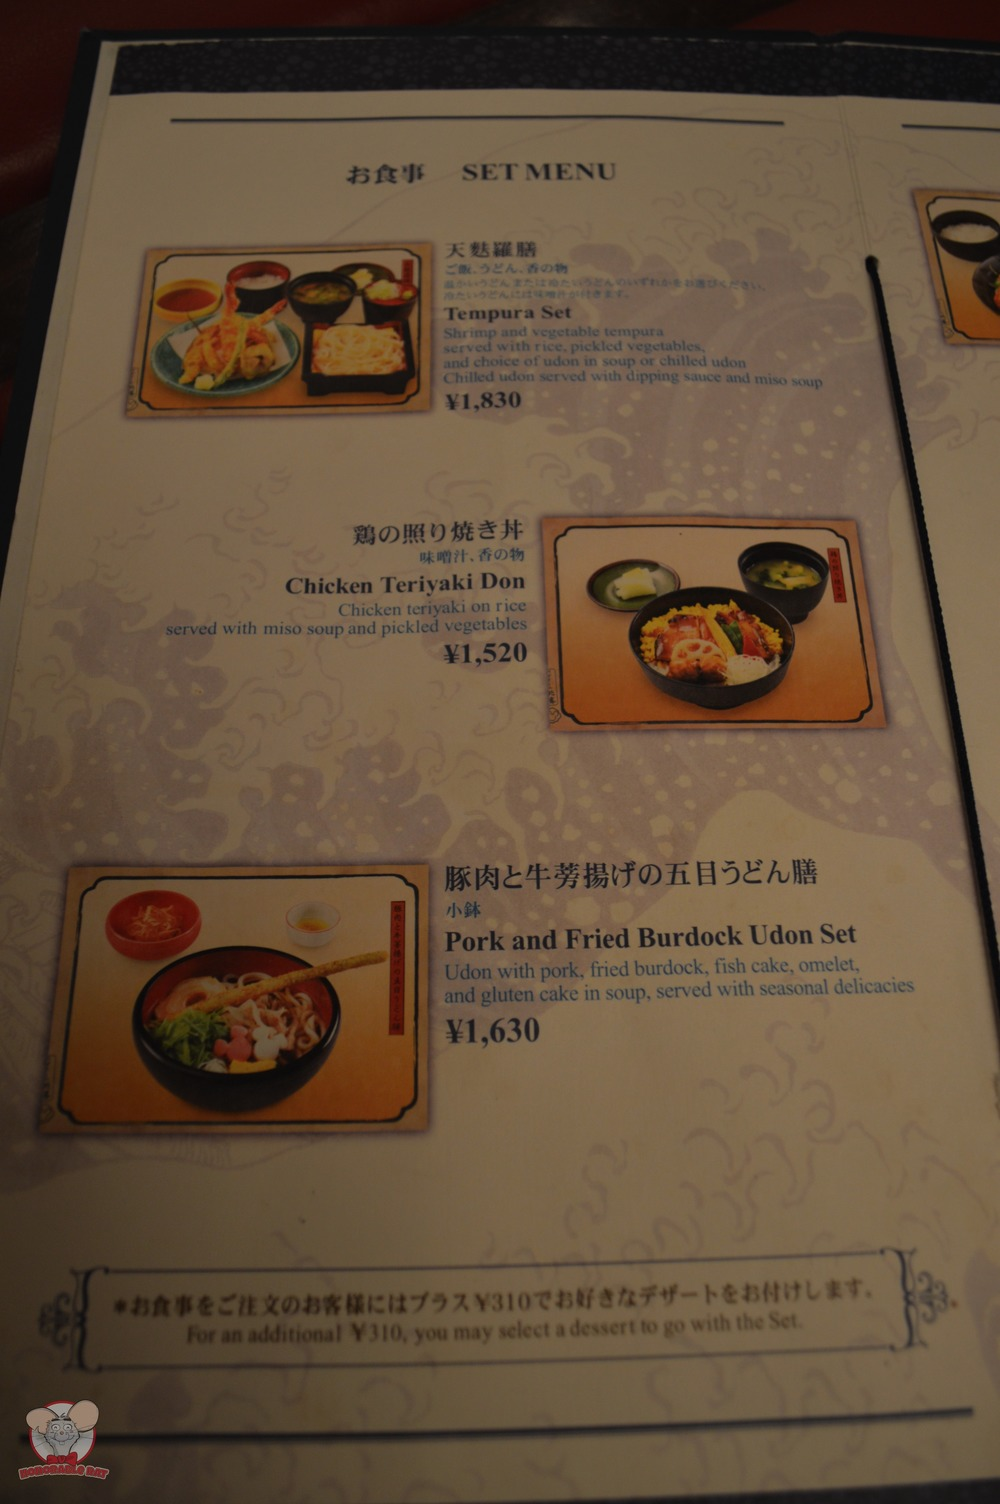 Restaurant Hokusai Menu (Main Dishes)